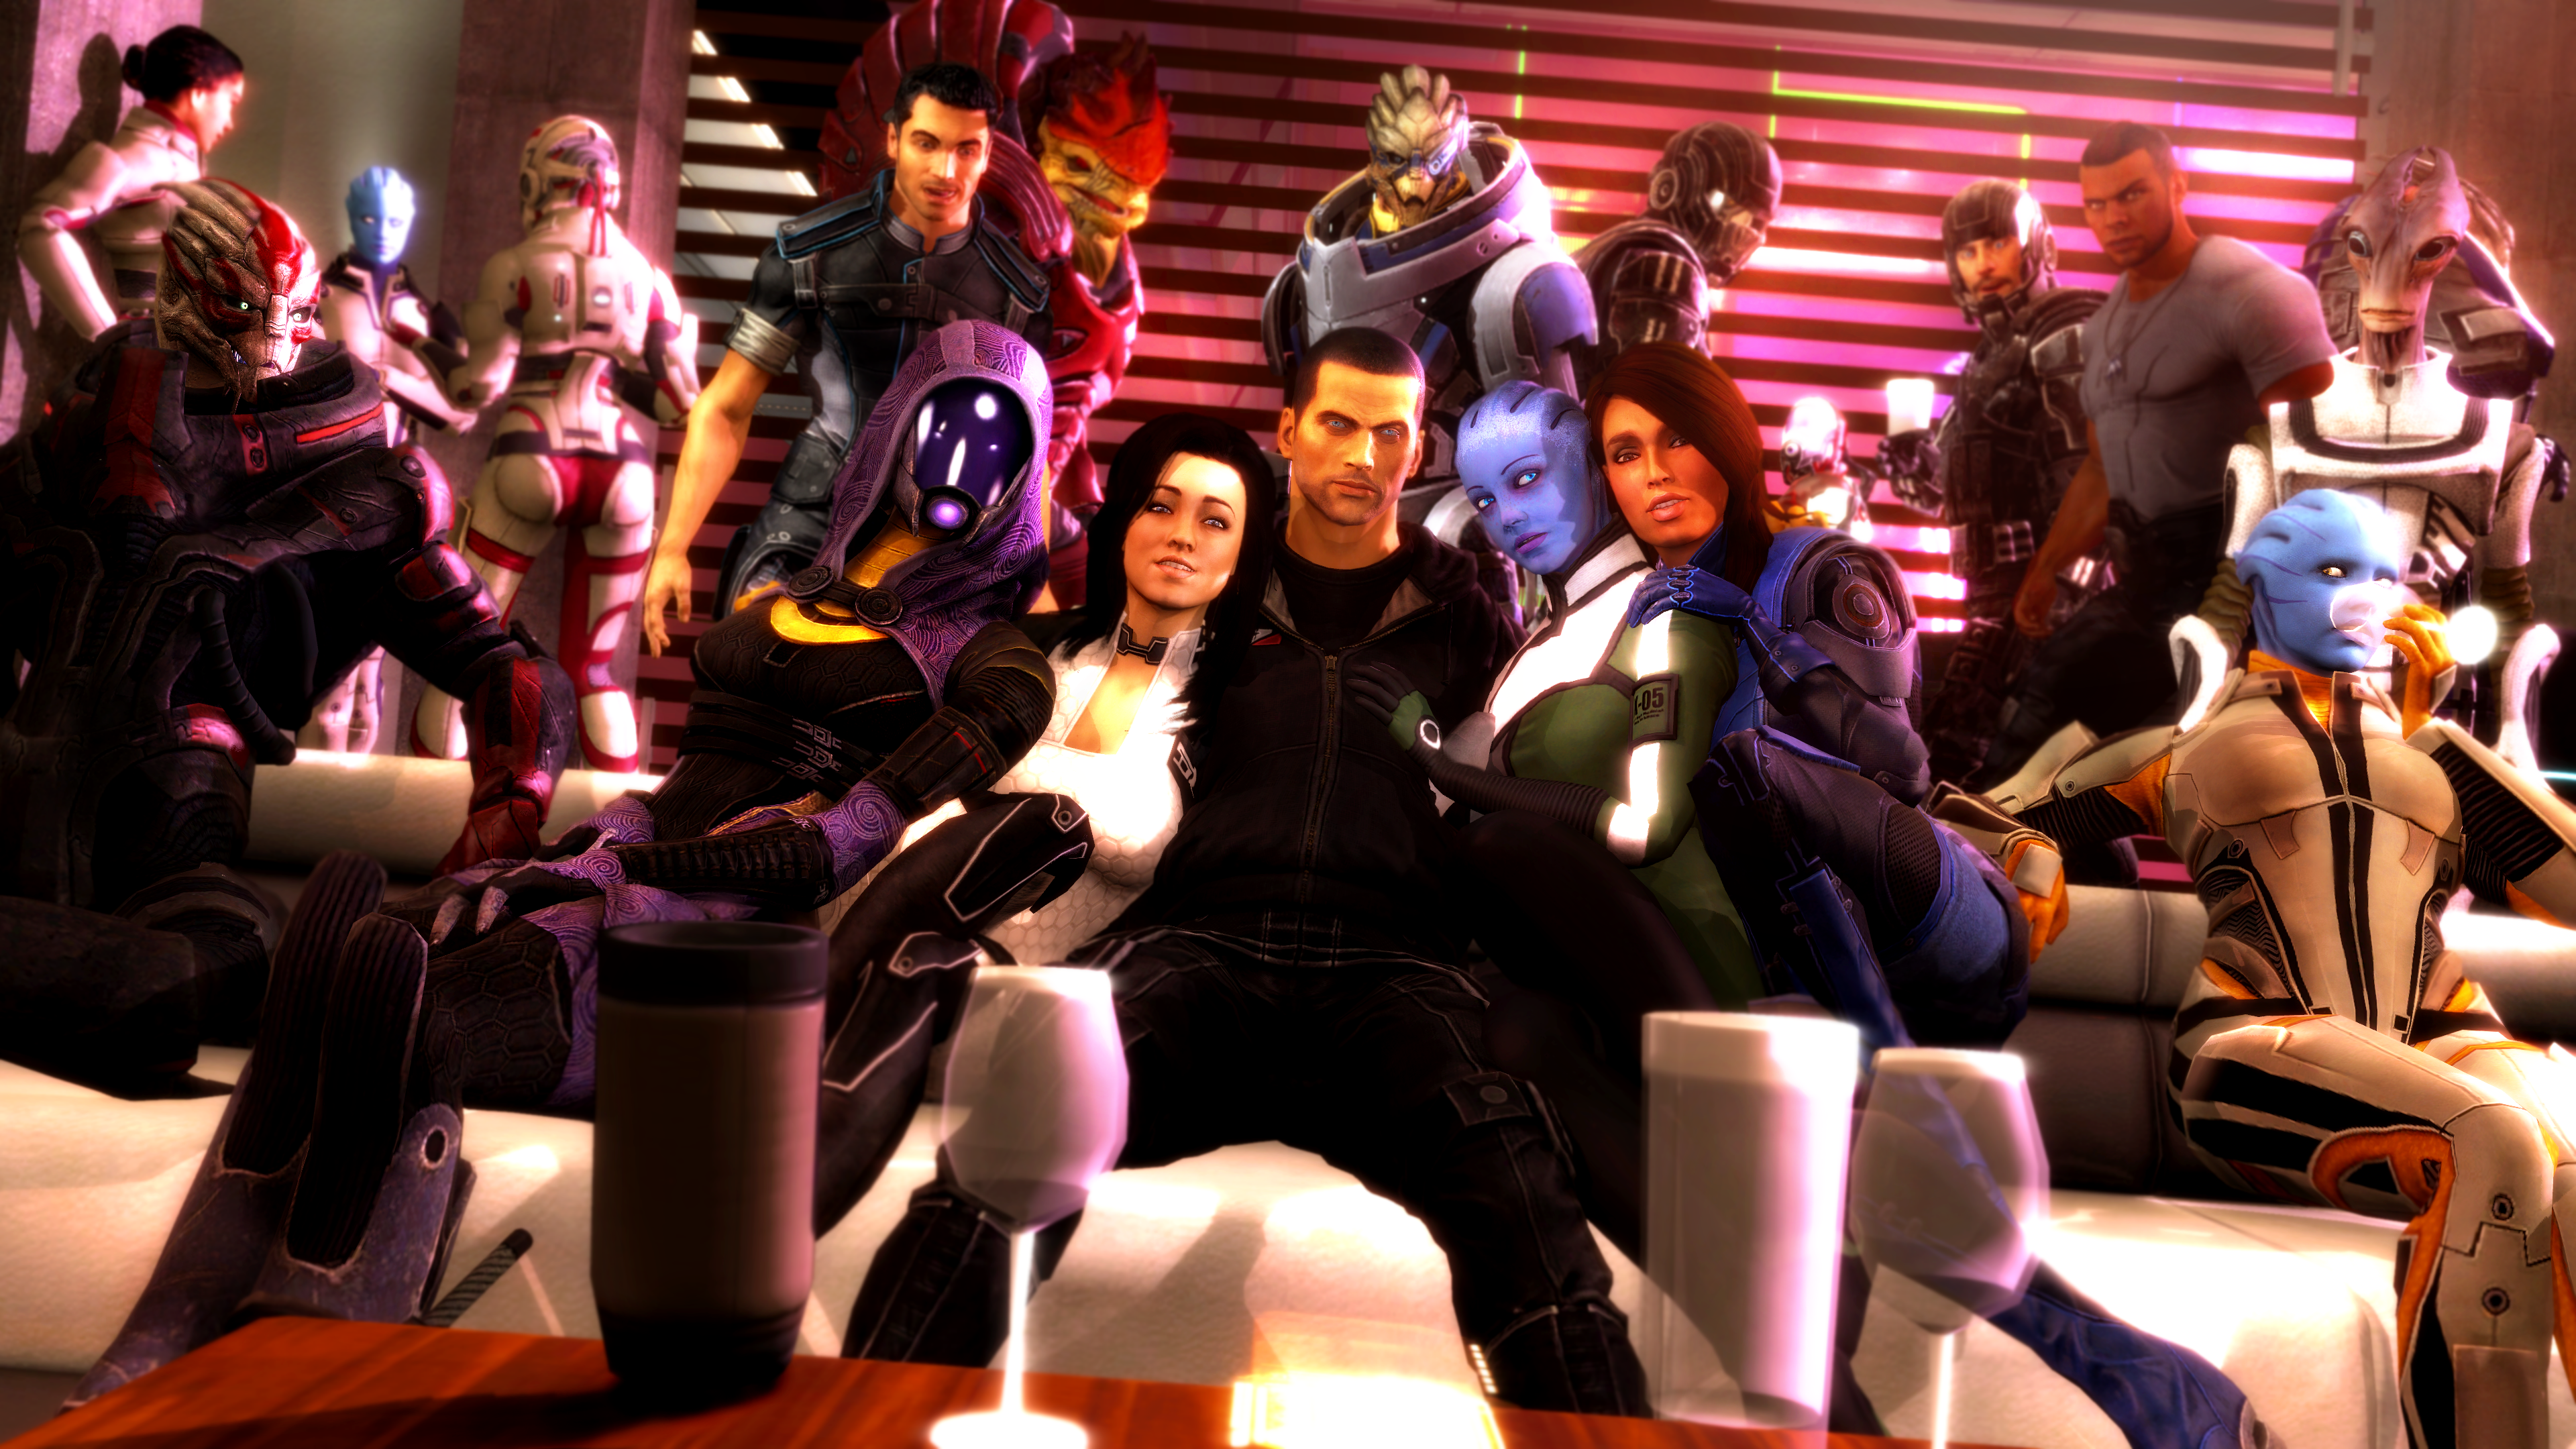 shepard_s_chill_party_by_lordhayabusa357-d9usffm.png